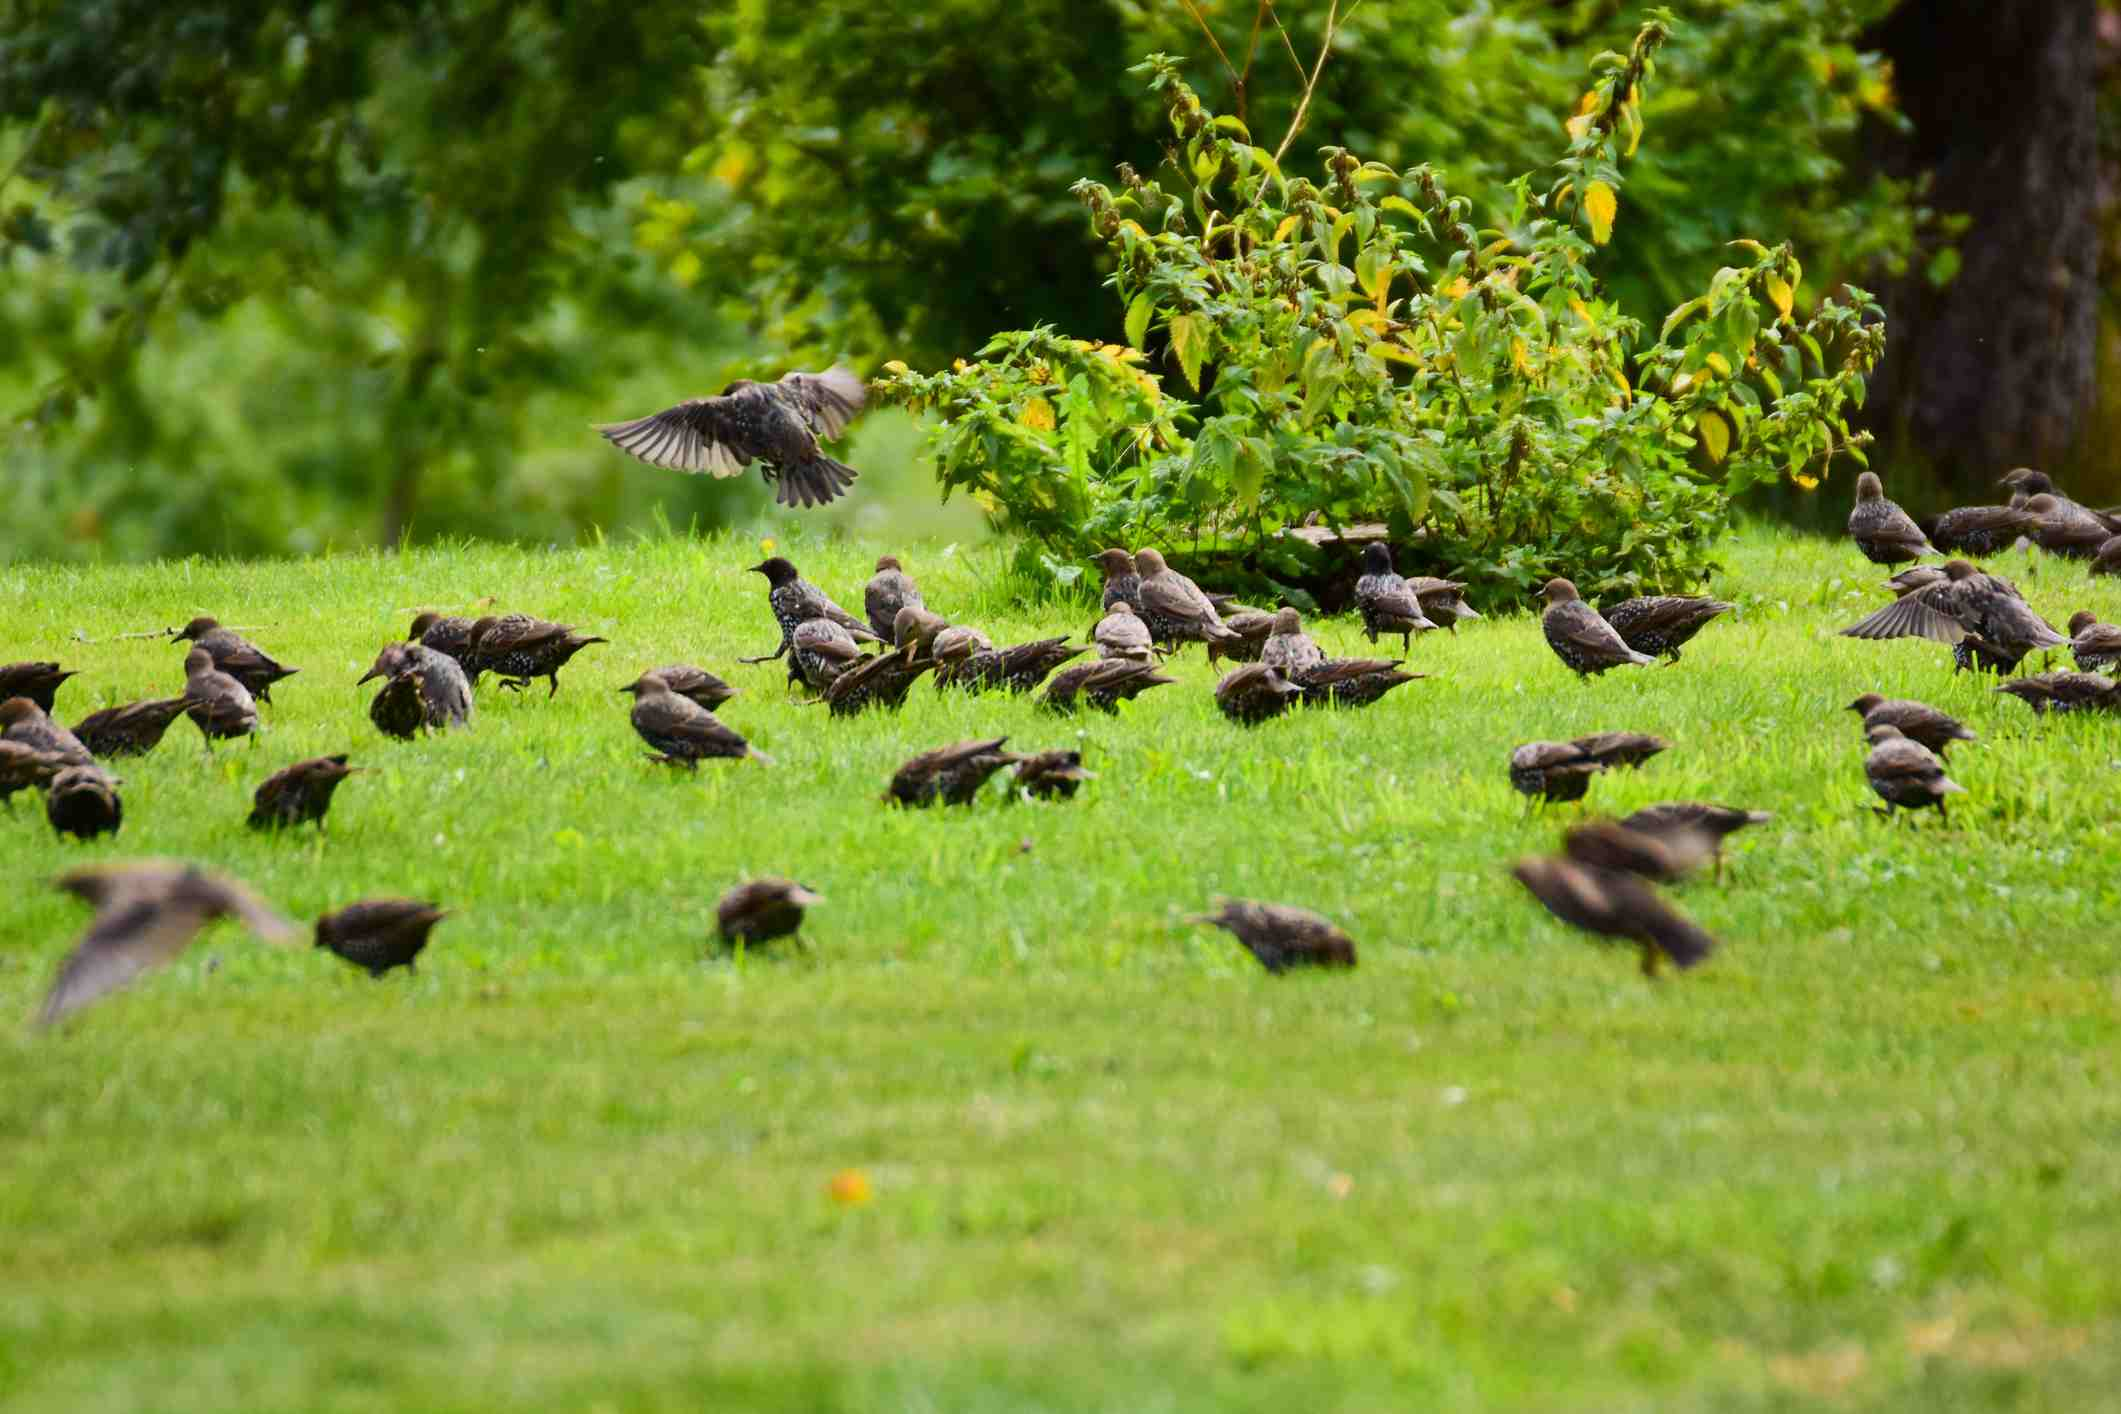 In the fall, European Starlings alternate between Tree/Shrub fruit foraging to ground foraging in lawns, fields, prairies, and farm fields that become invaded by whatever tree/shrub species they eat in mass if left unmown and/or unburned. Since the introduction of Callery Pears, Starlings have a new favorite item on the menu.